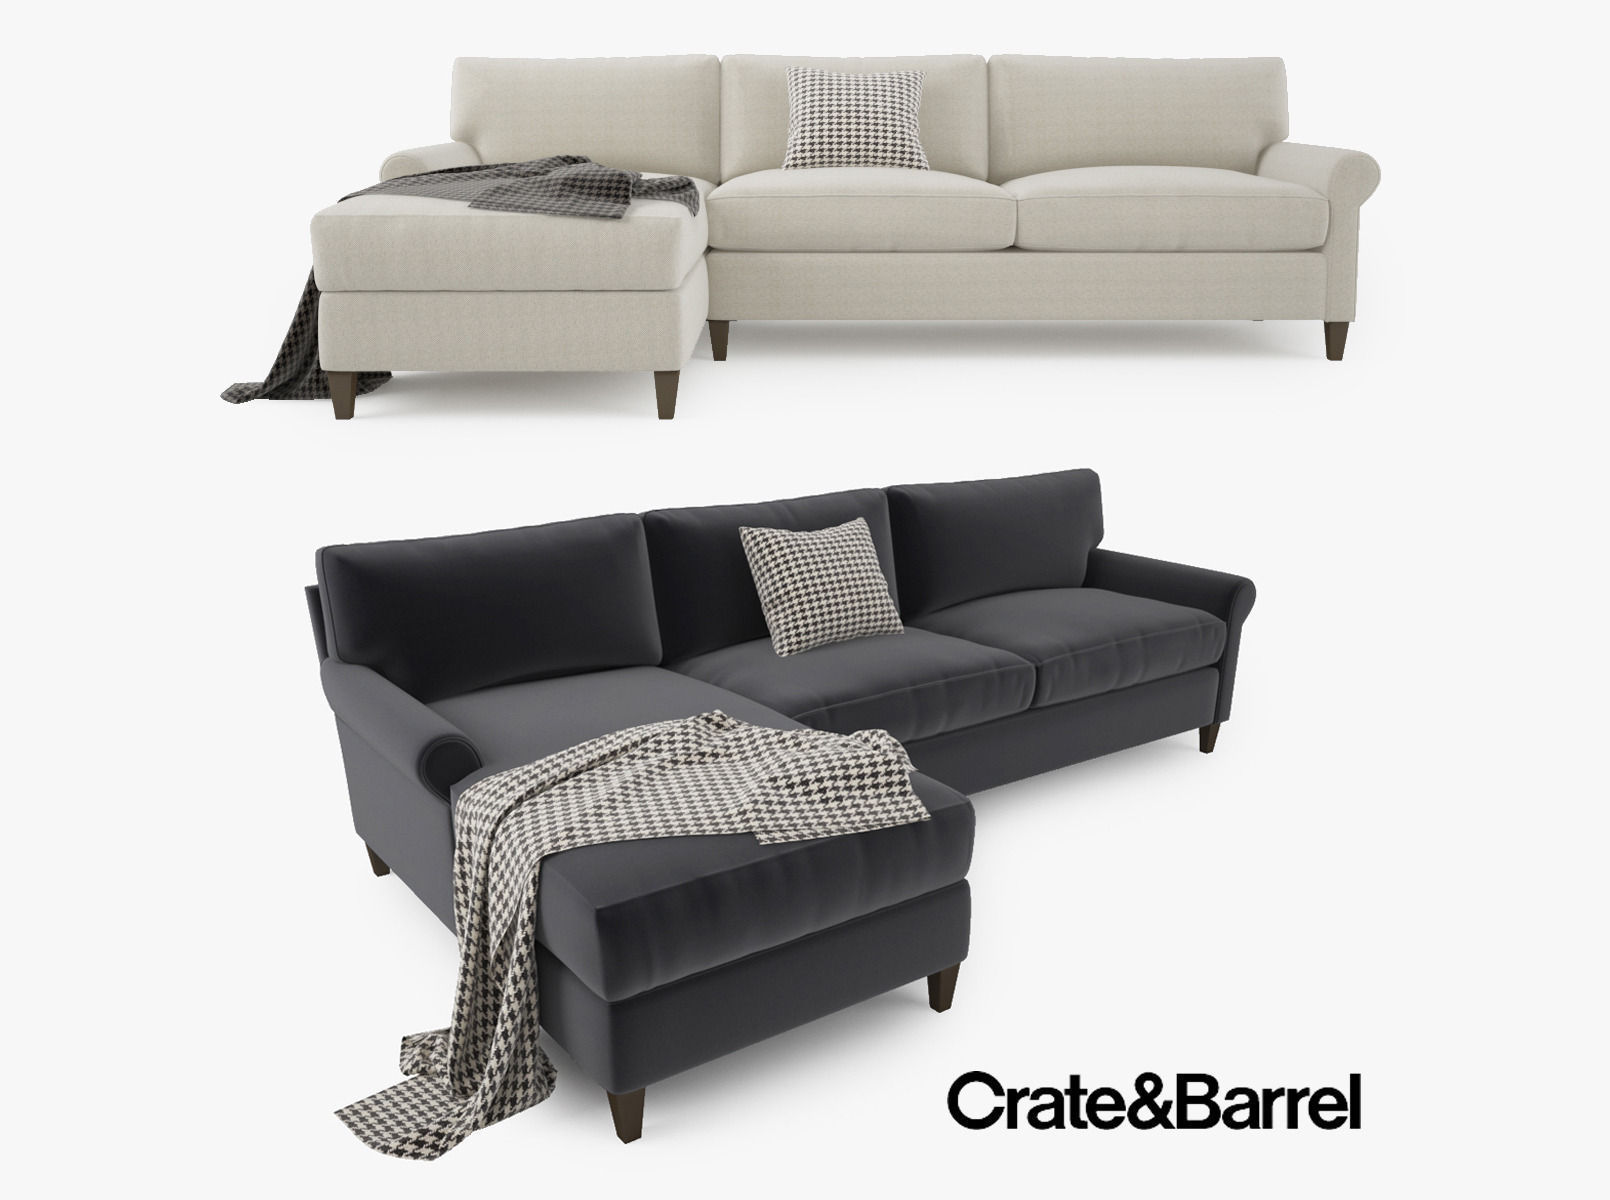 Crate and barrel montclair 2 piece sectional sofa 3d model